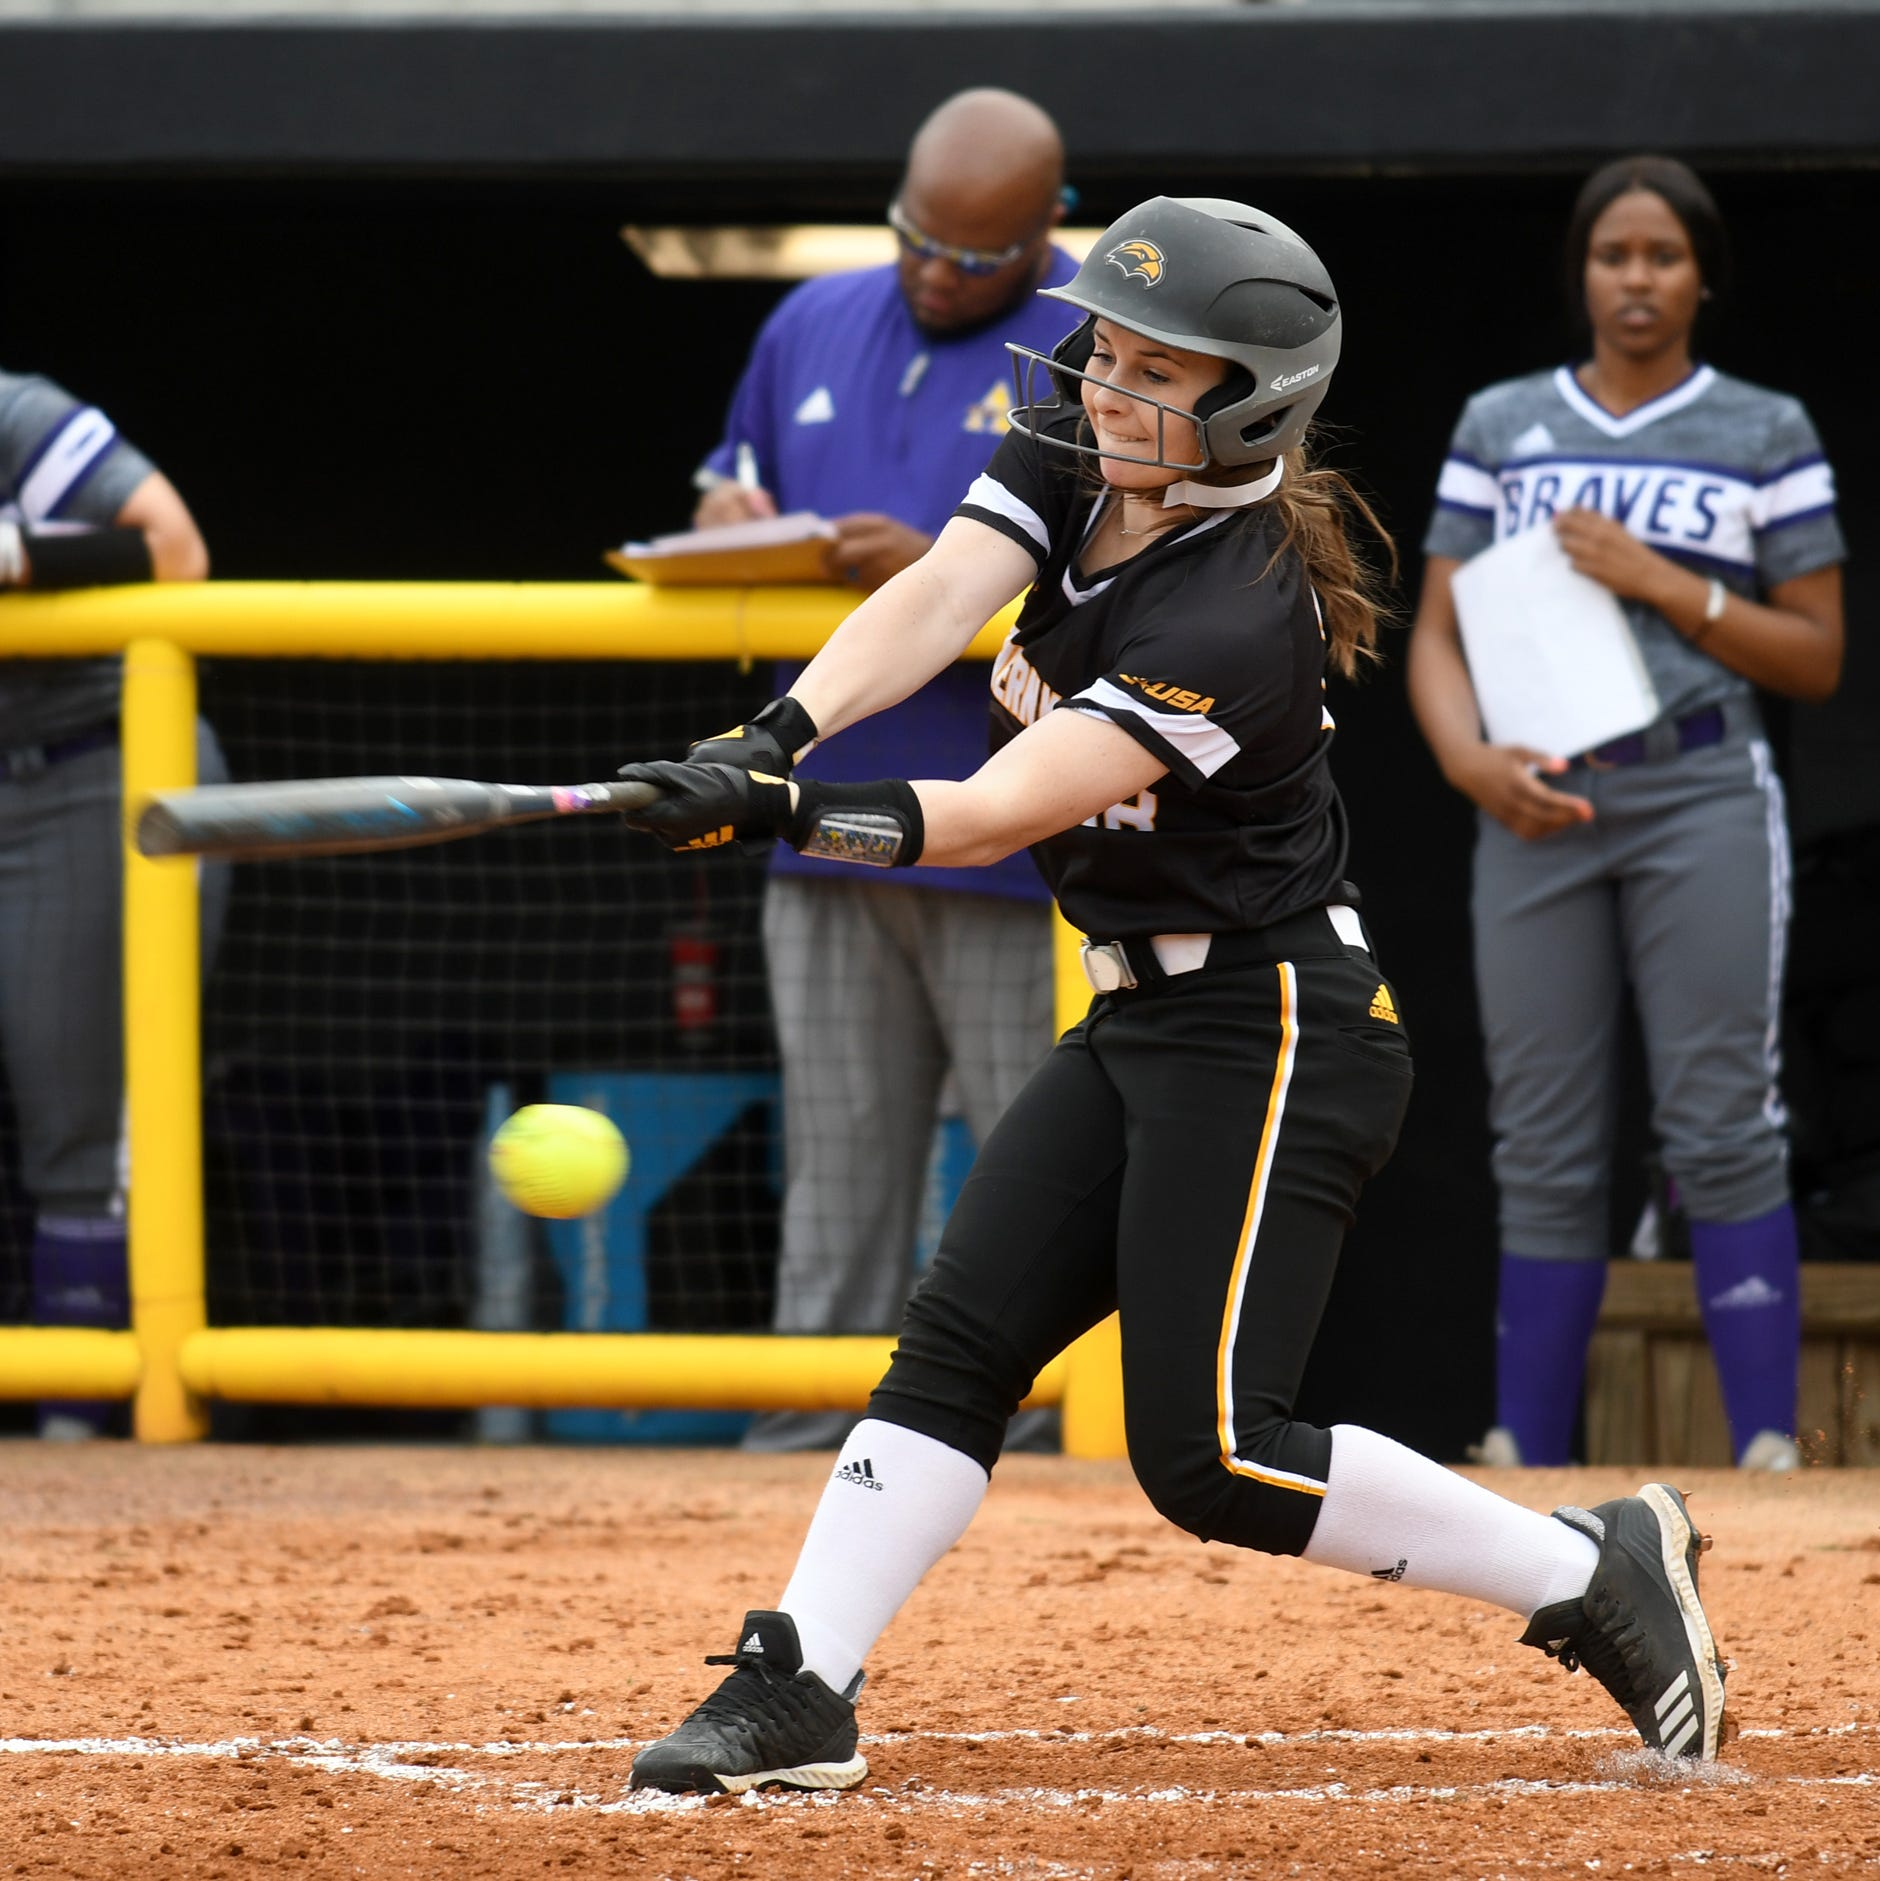 How to watch Ole Miss vs. Southern Miss softball on TV, stream online